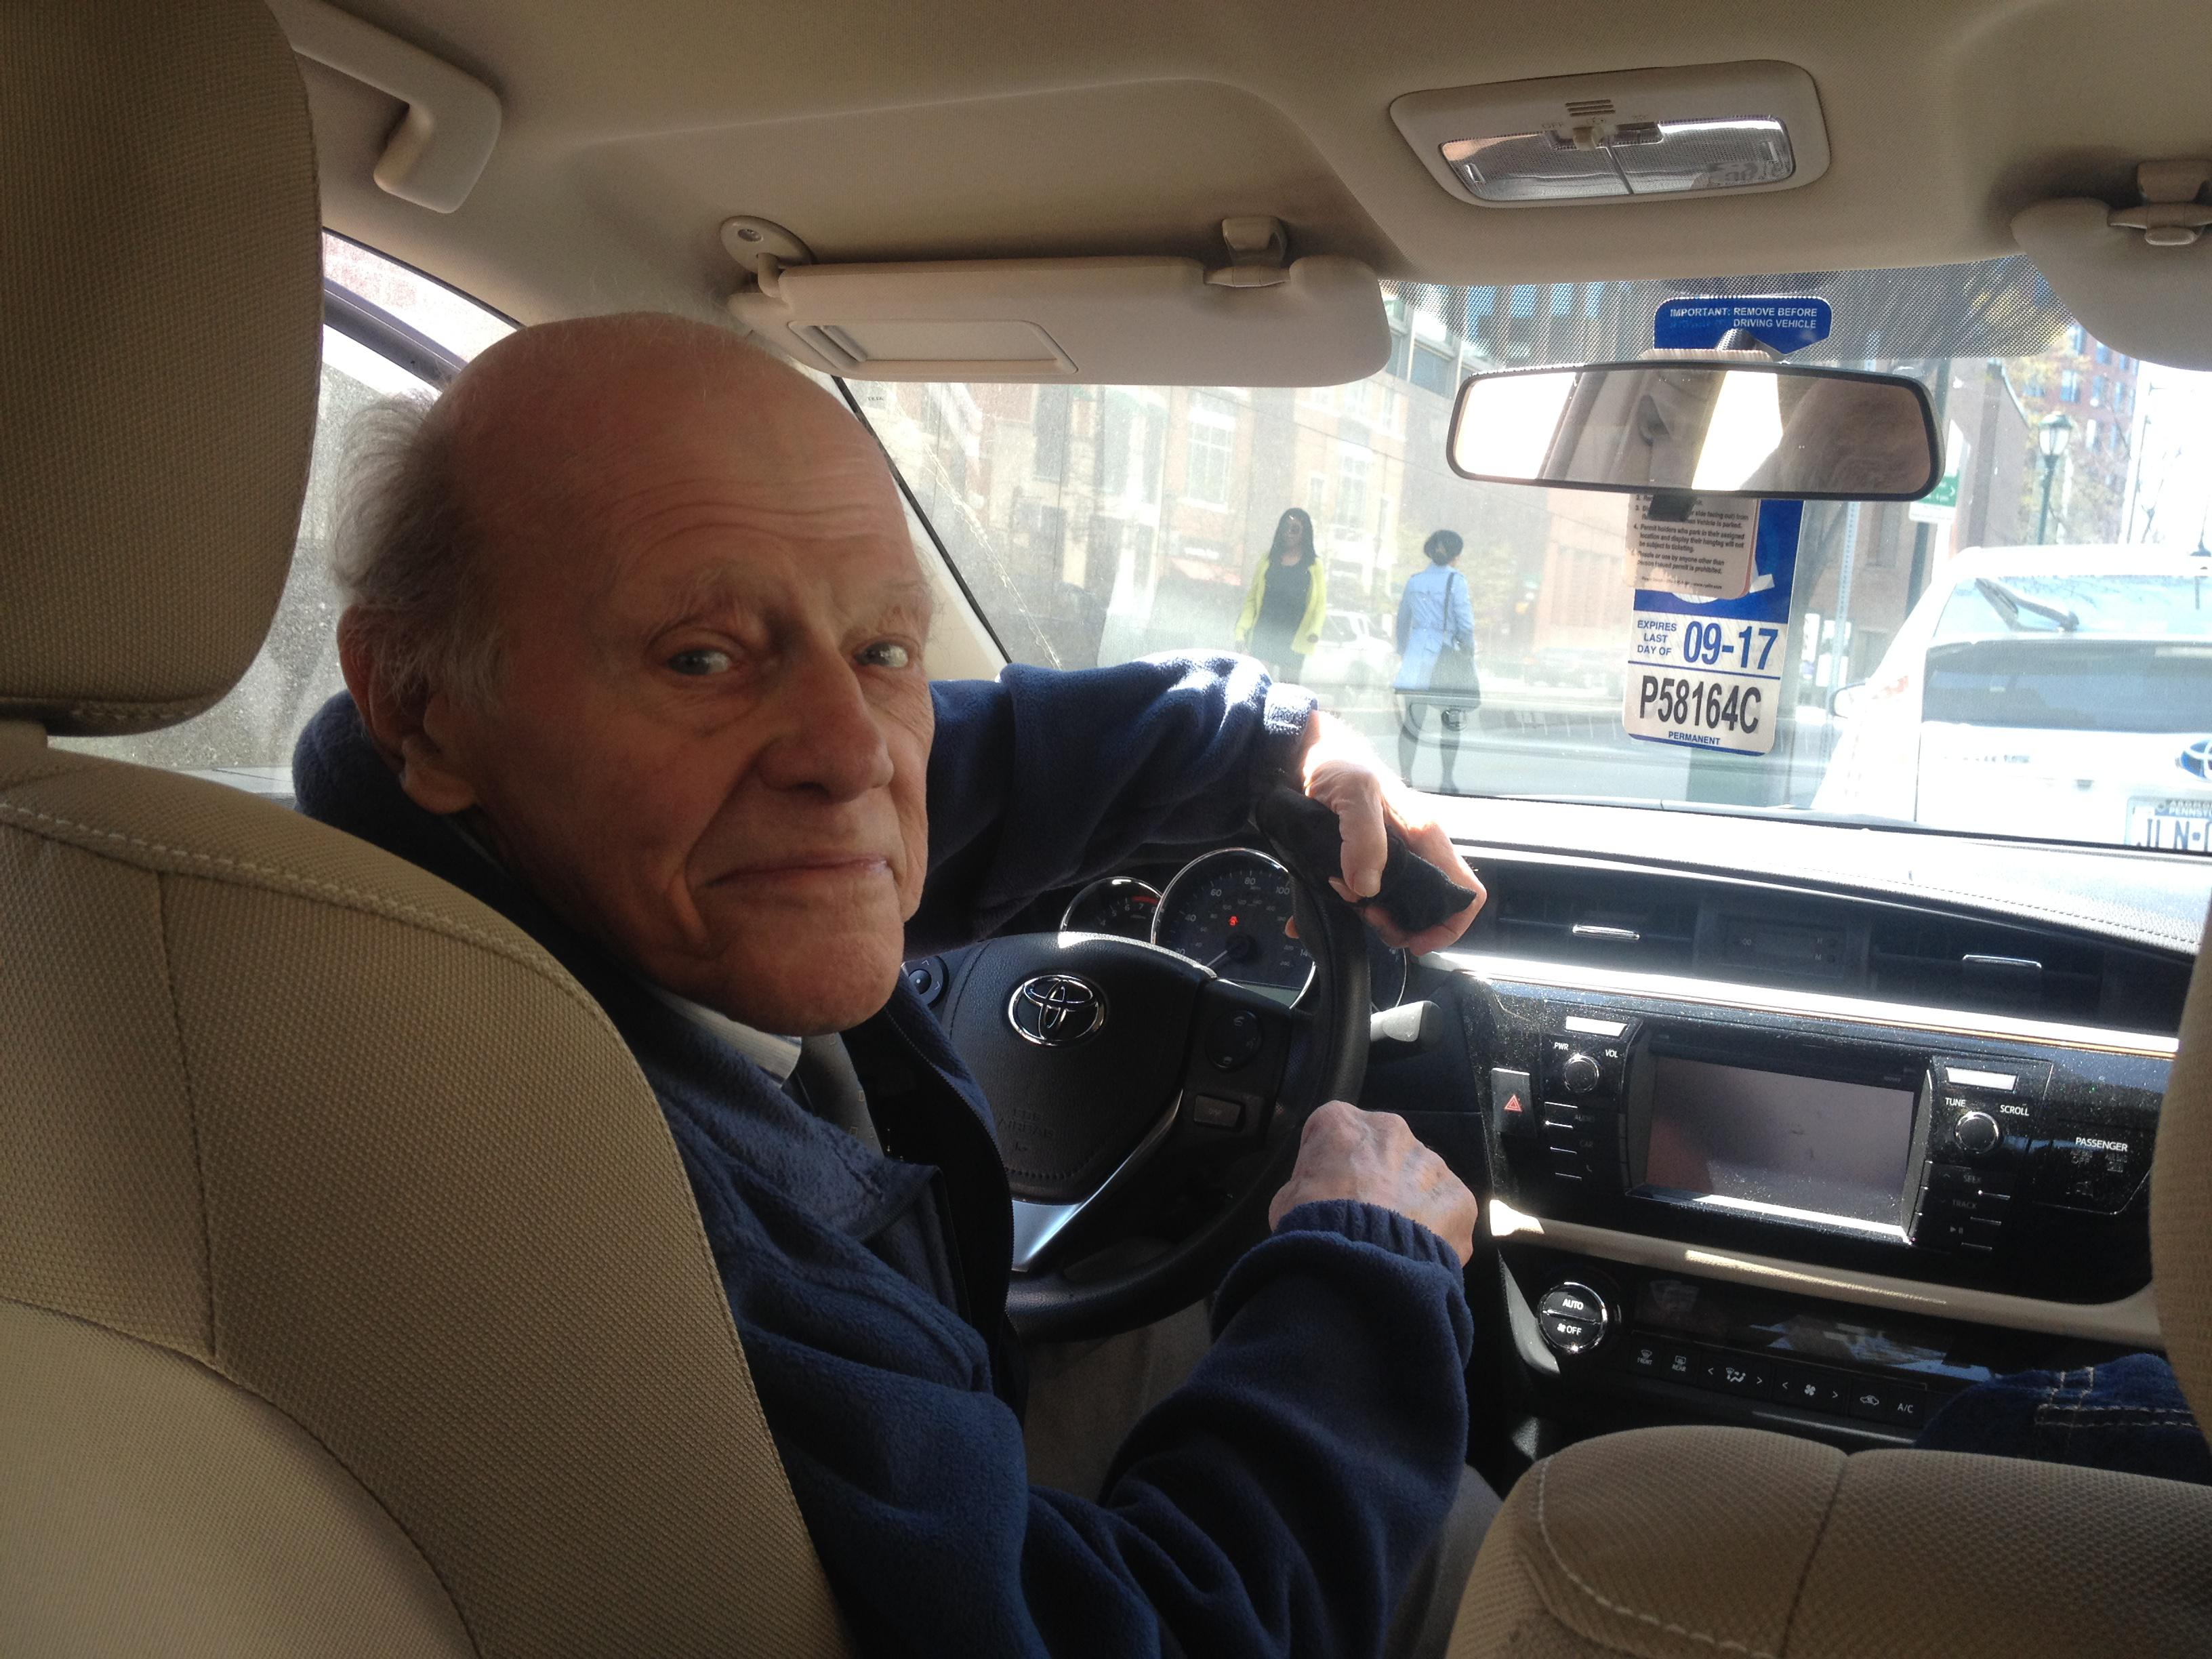 Last time I saw Dick was in 2016. He and Karen drove me back to my hotel, where before saying goodbye, I took a photo of my 90 year old driver